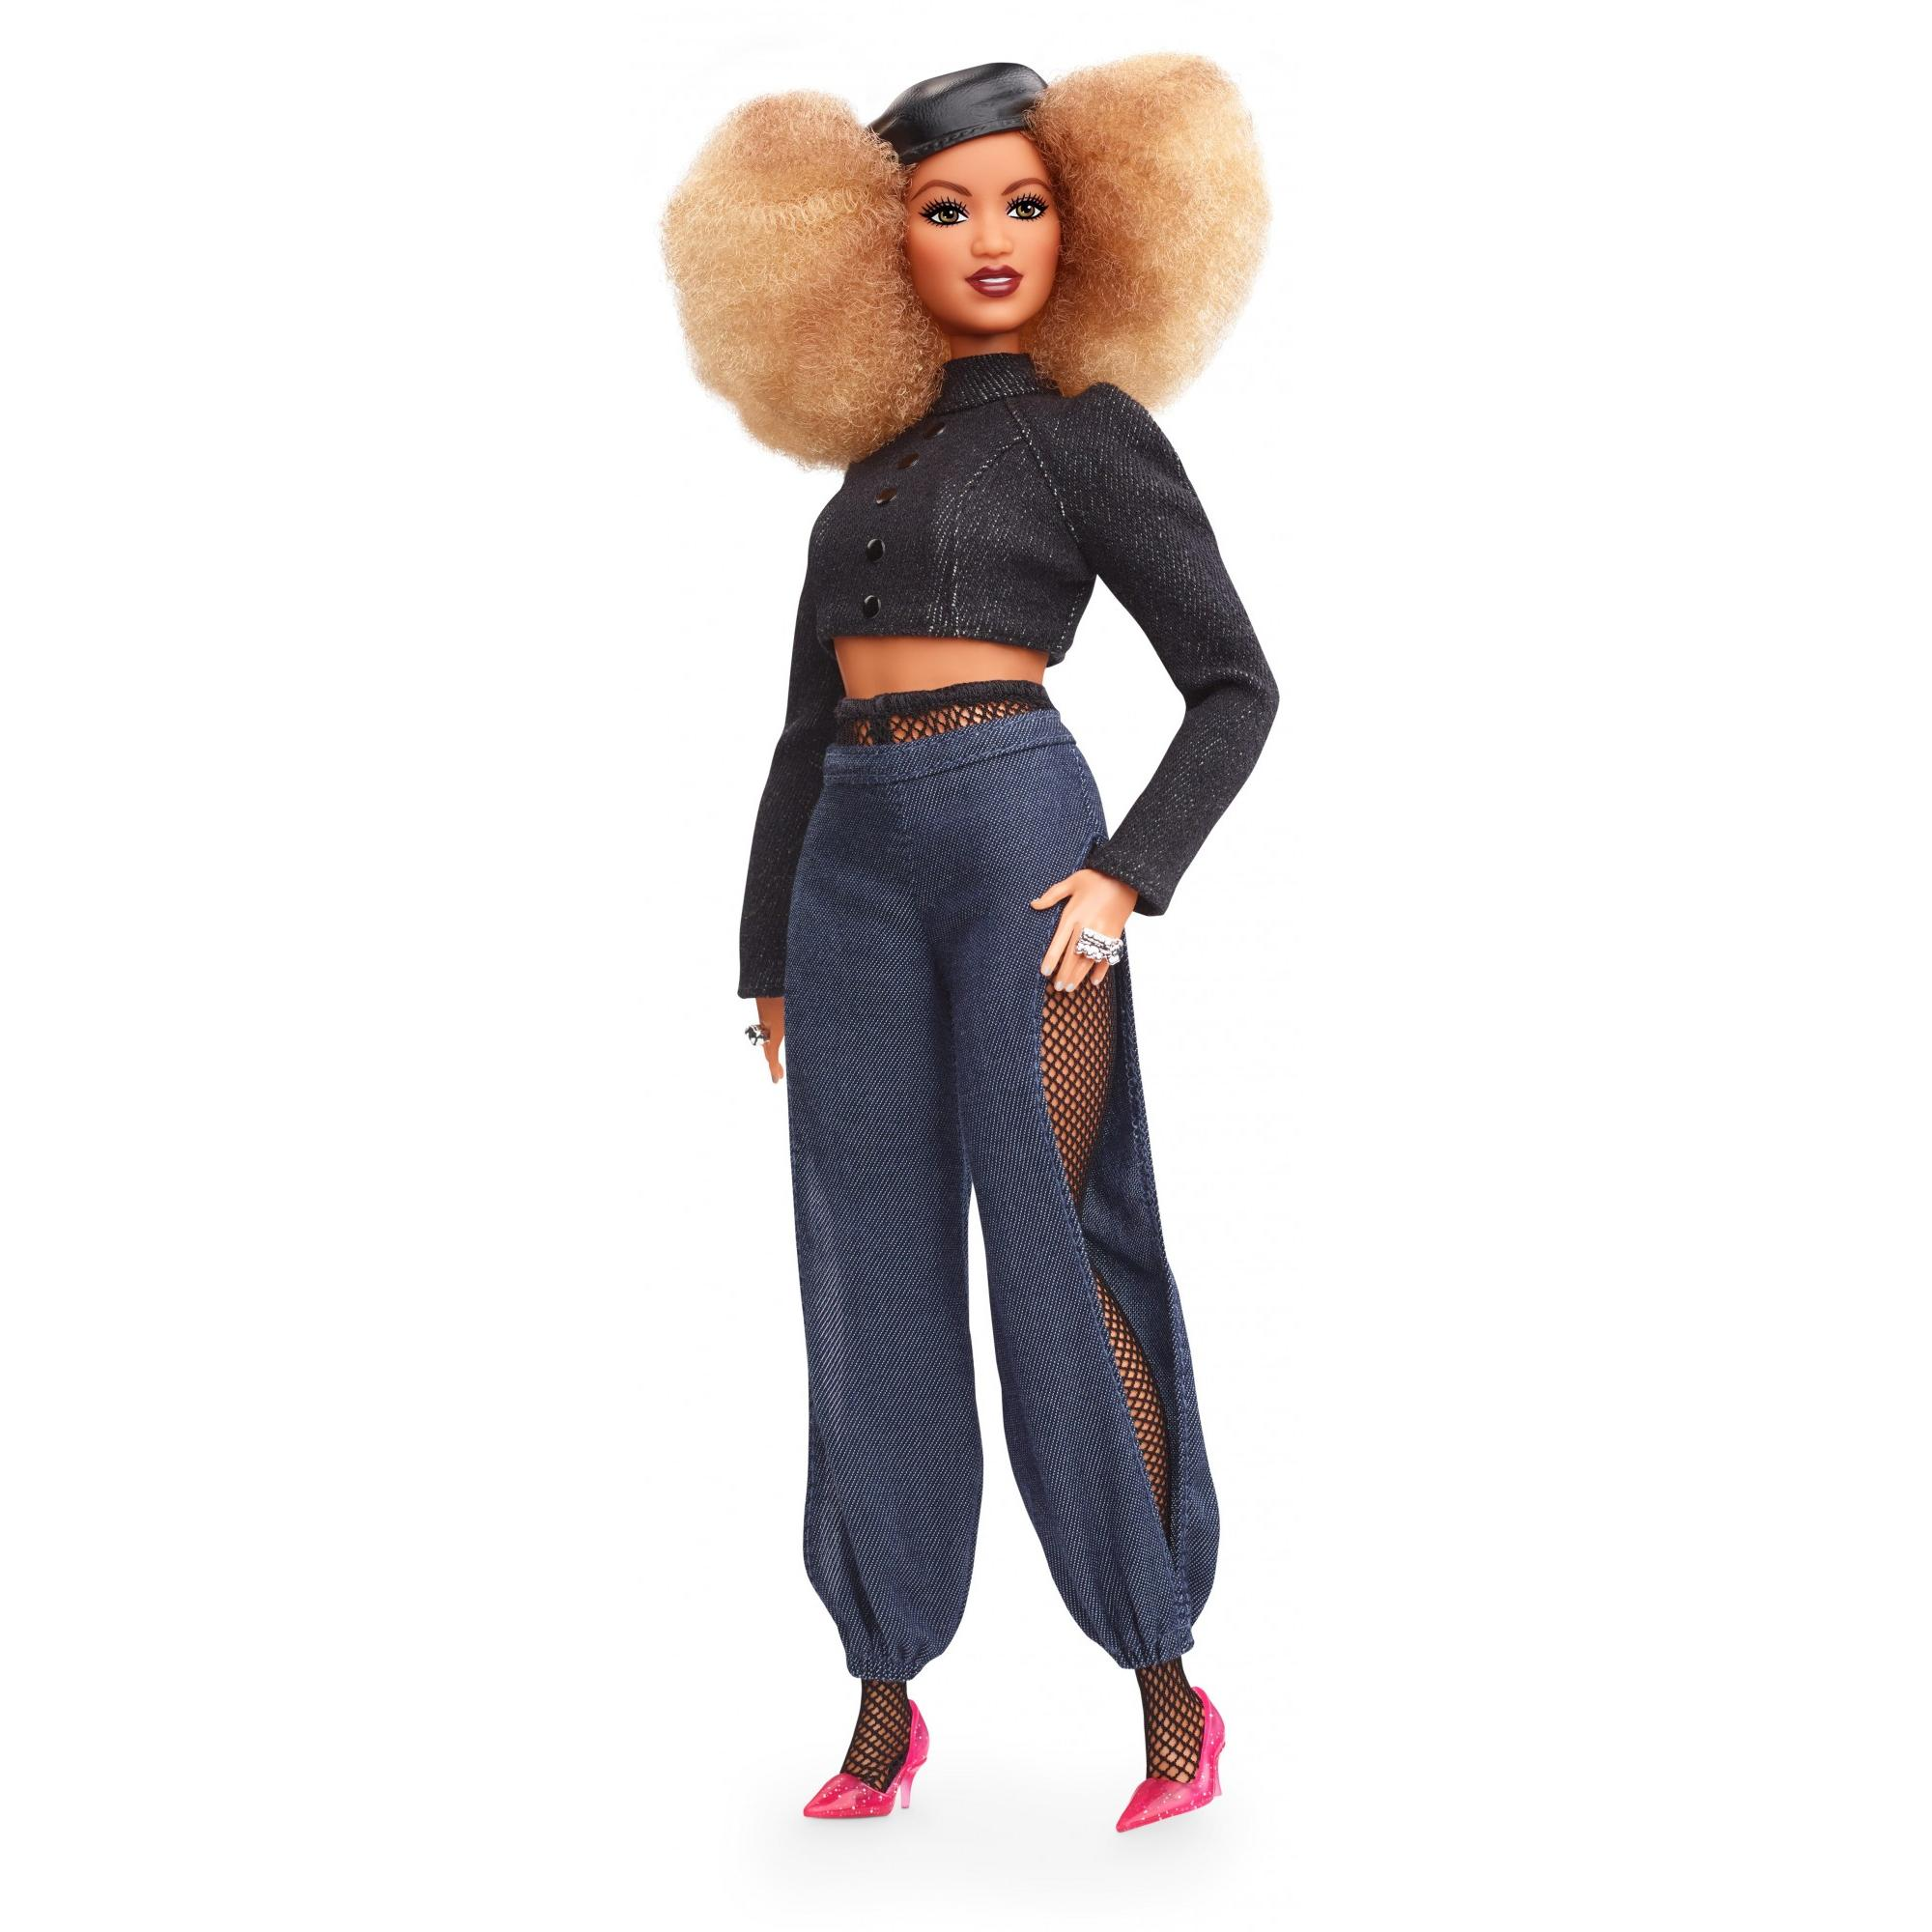 Barbie Styled by Marni Senofonte Doll Curvy with Blond Curly Hair